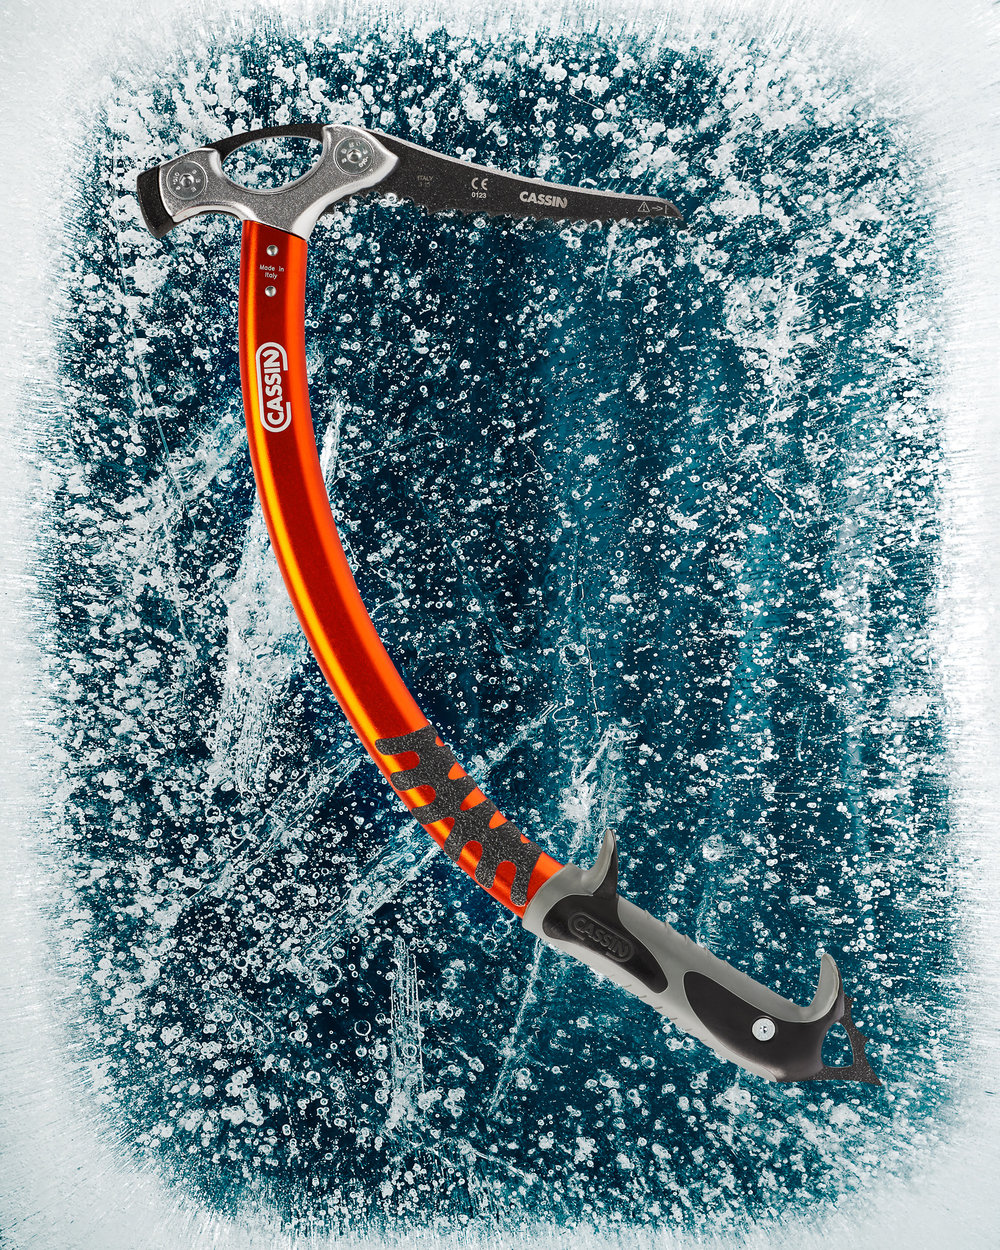 Ice axe laying on top of the ice slab. 2 flashes were used to light the ice from below while an additional 2 flashes lit the ice axe.